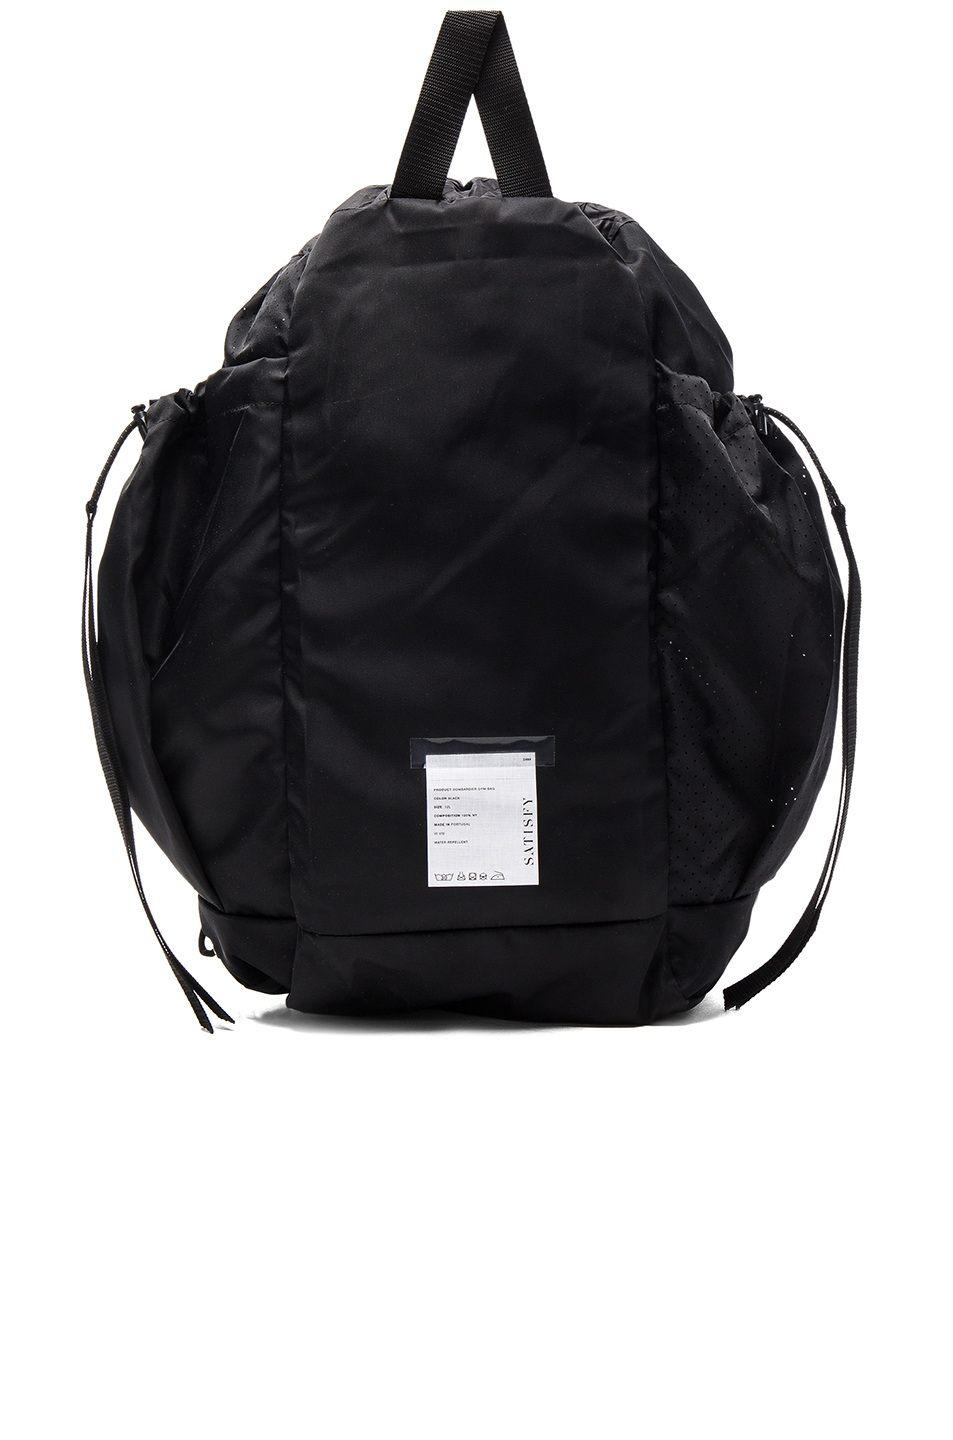 Satisfy Bombardier Gym Bag in Black